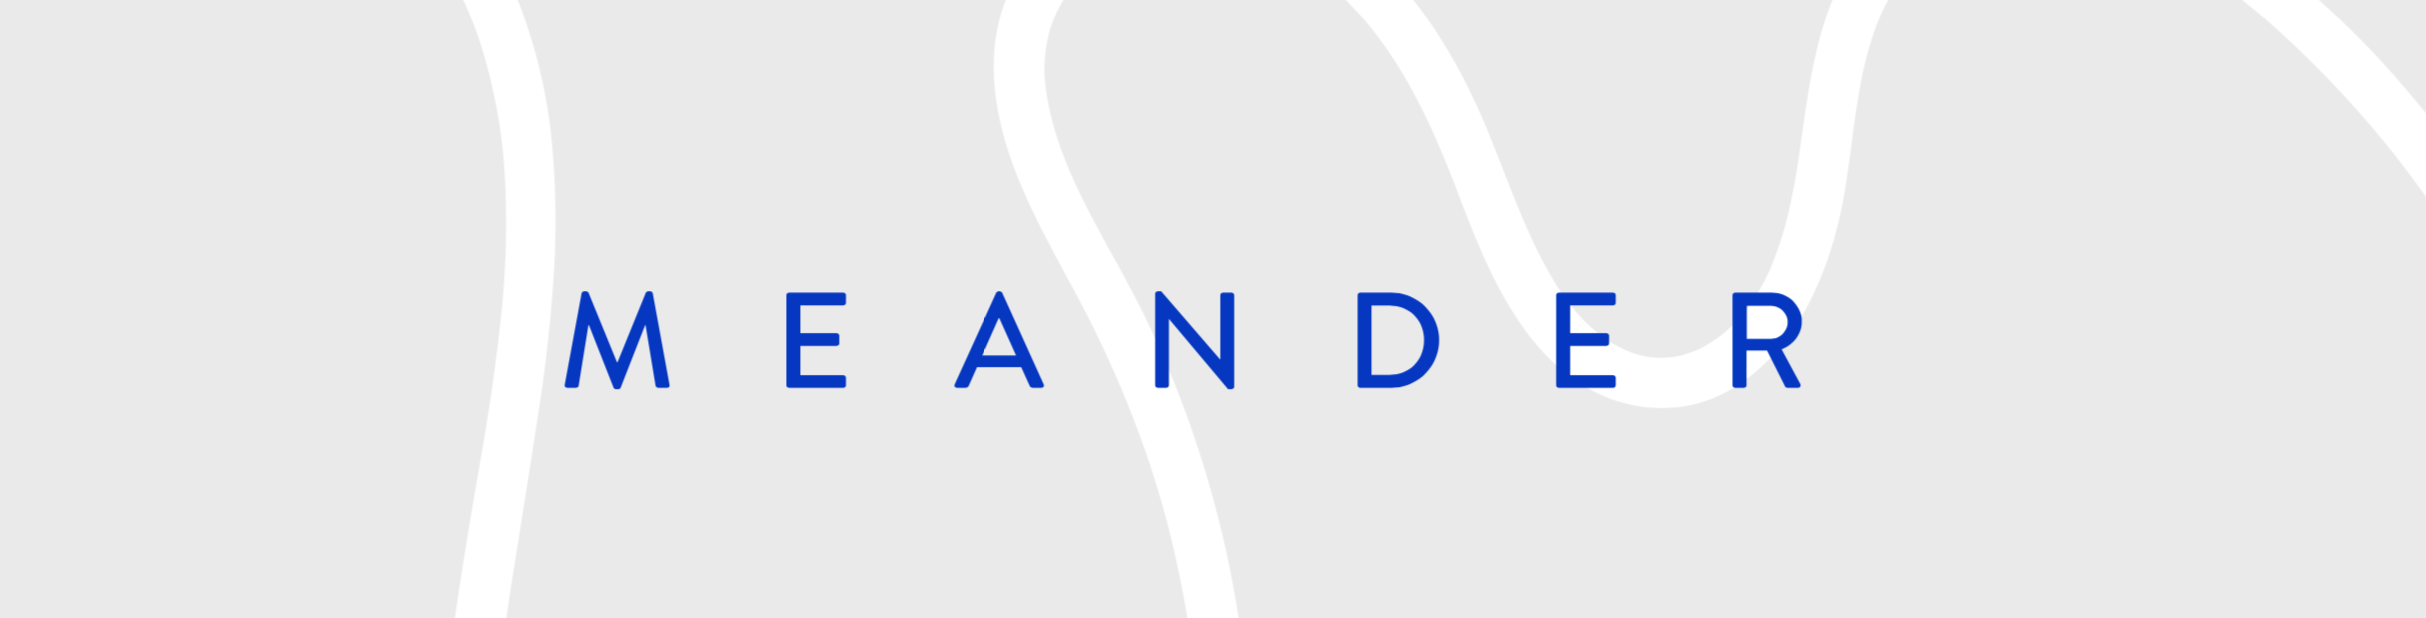 meander typeface bar.png